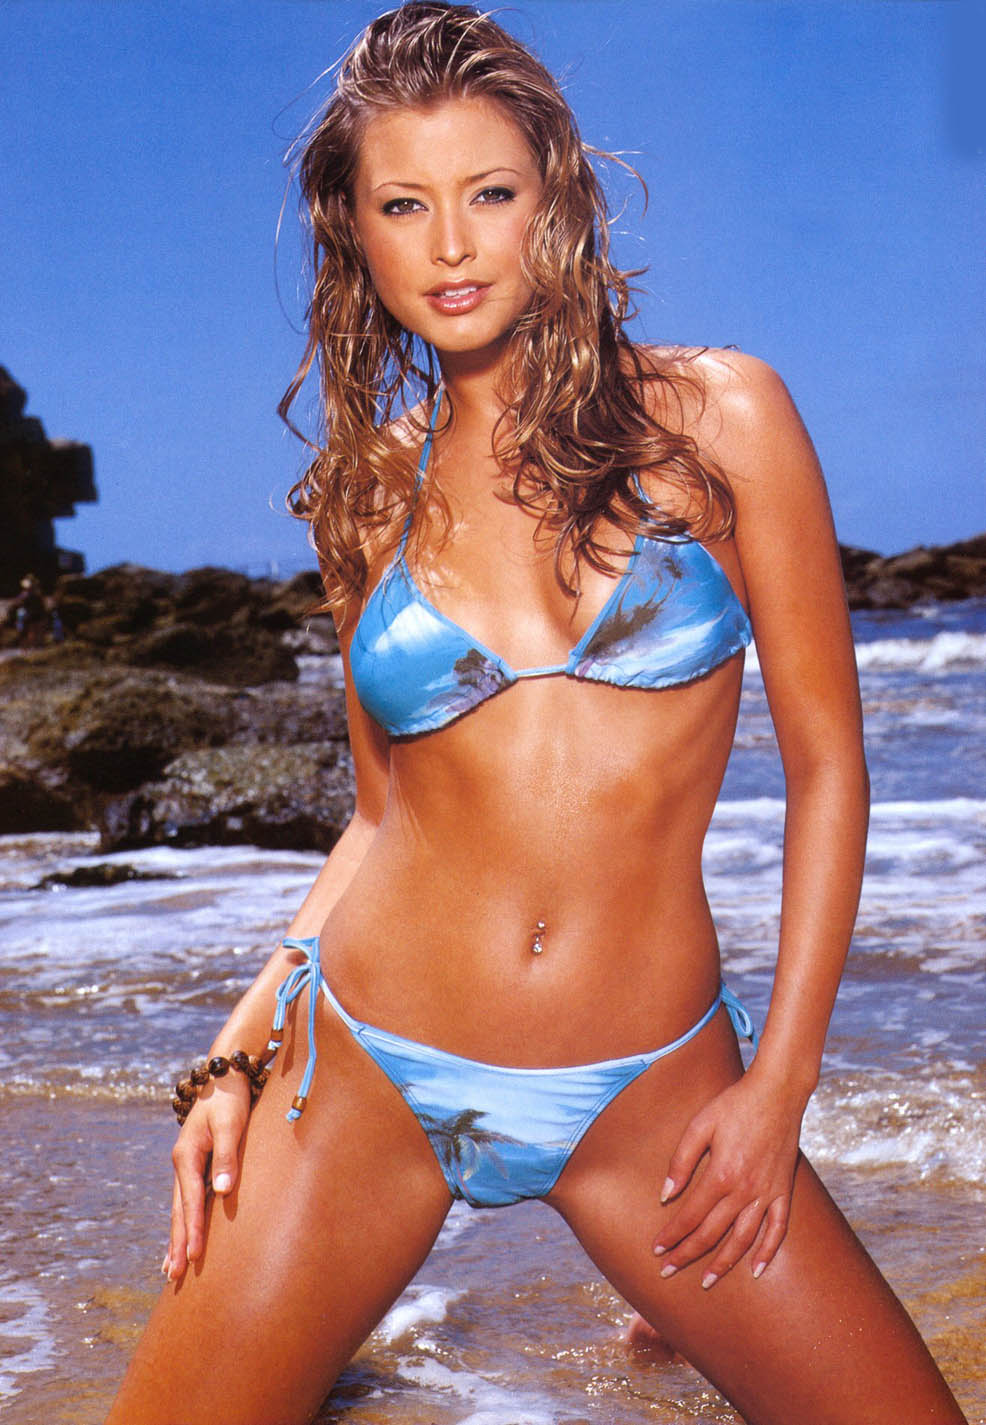 Bush holly valance bikini Sara